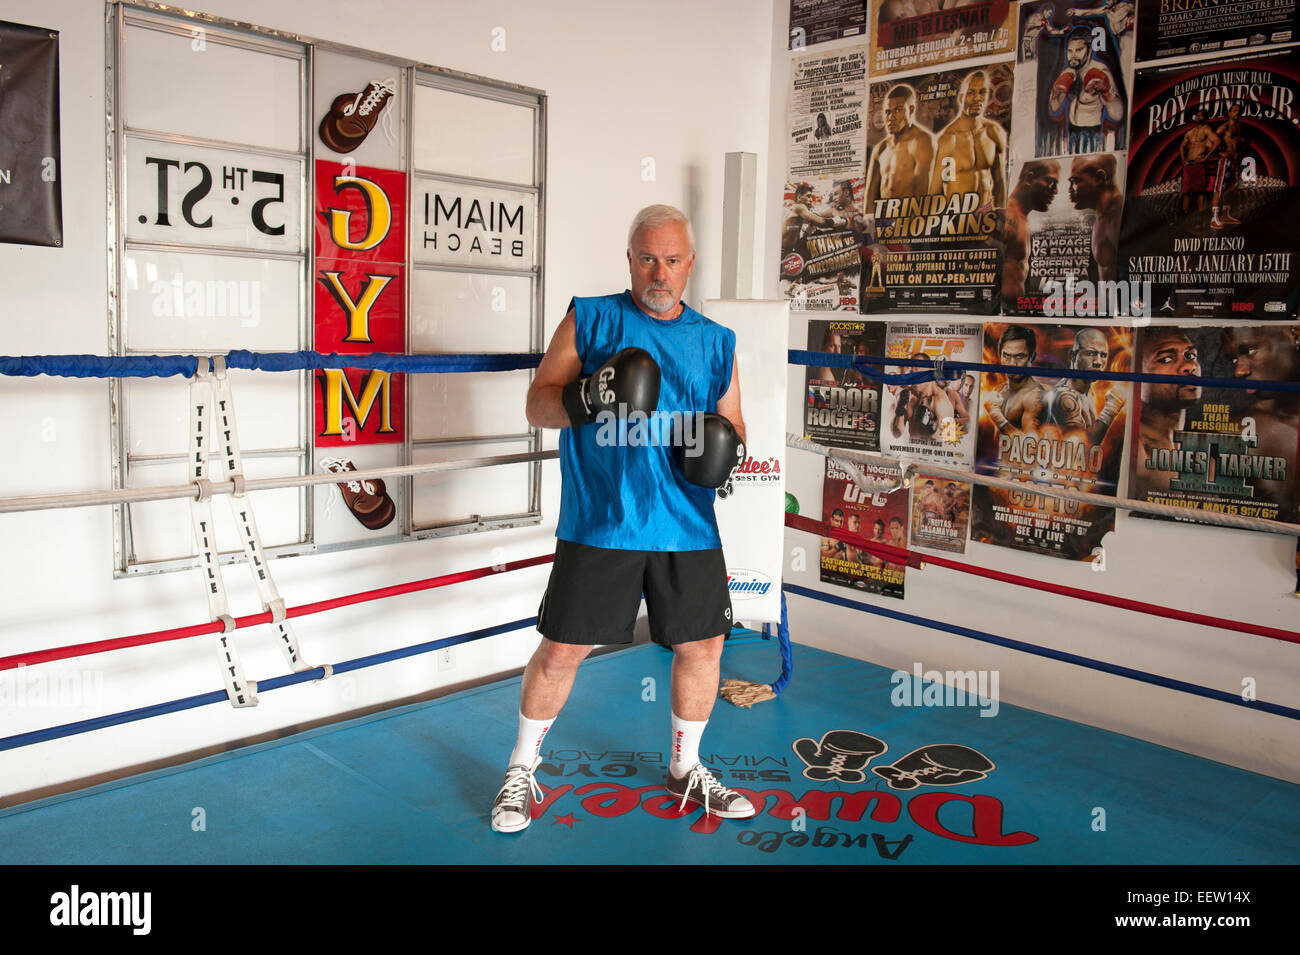 Mature male in a boxing ring preparing to fight - Stock Image